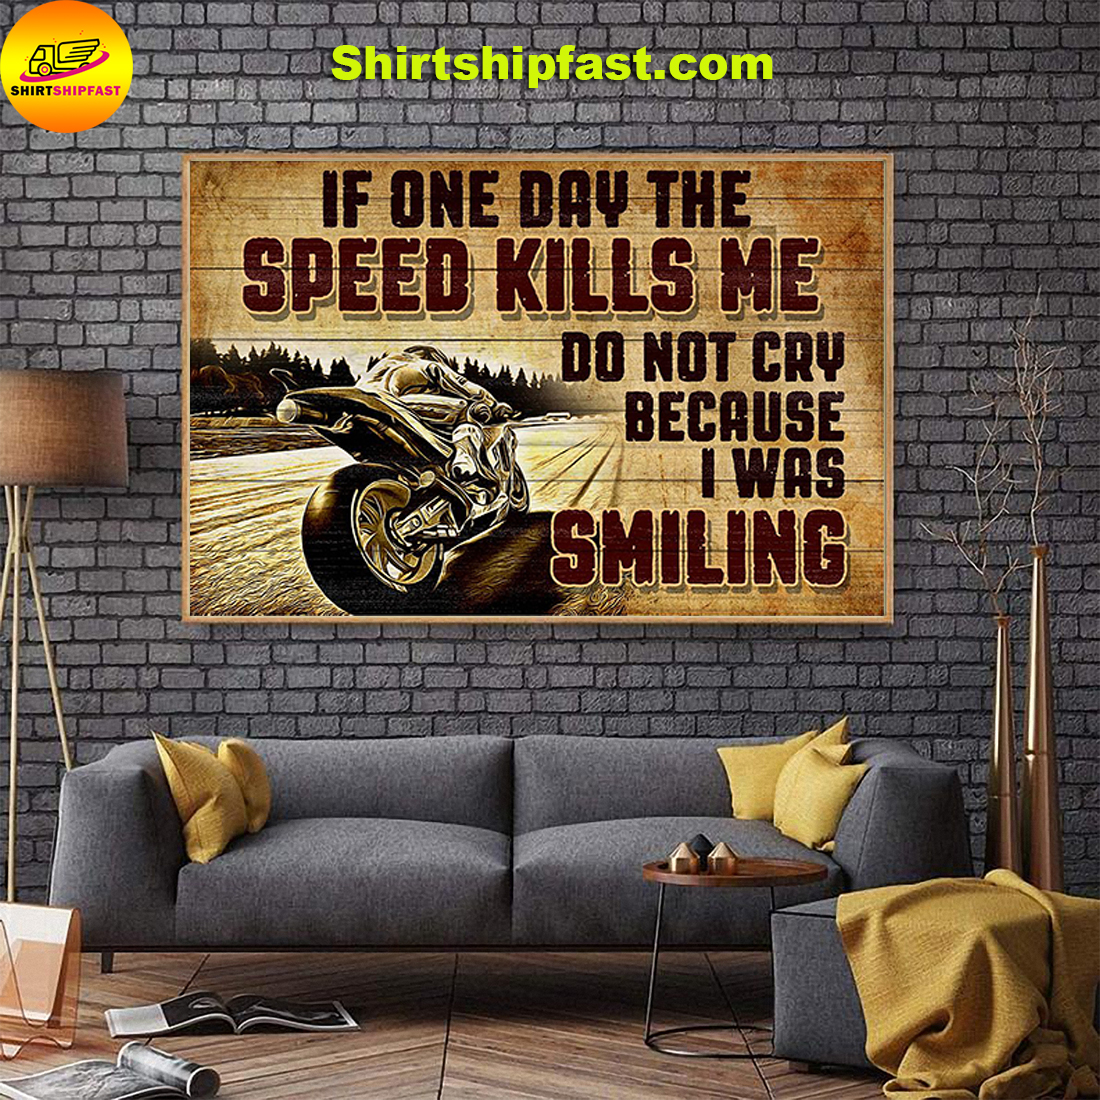 Superbike If one day the speed kills me do not cry because I was smilling poster - Picture 1